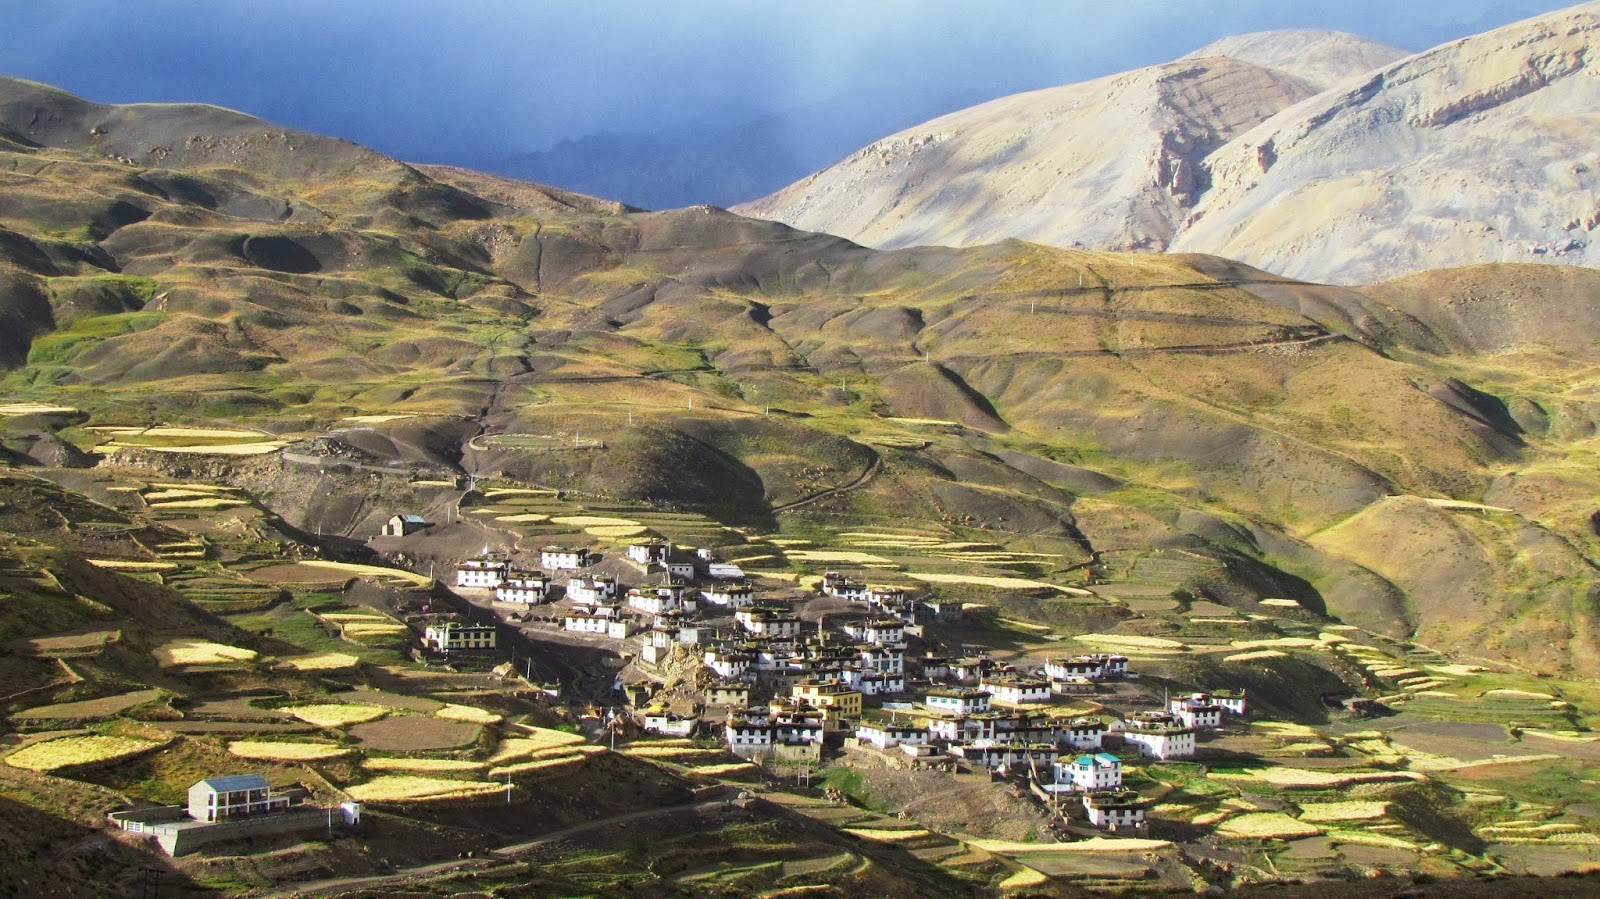 Demul village Spiti, Spiti villages, Spiti valley